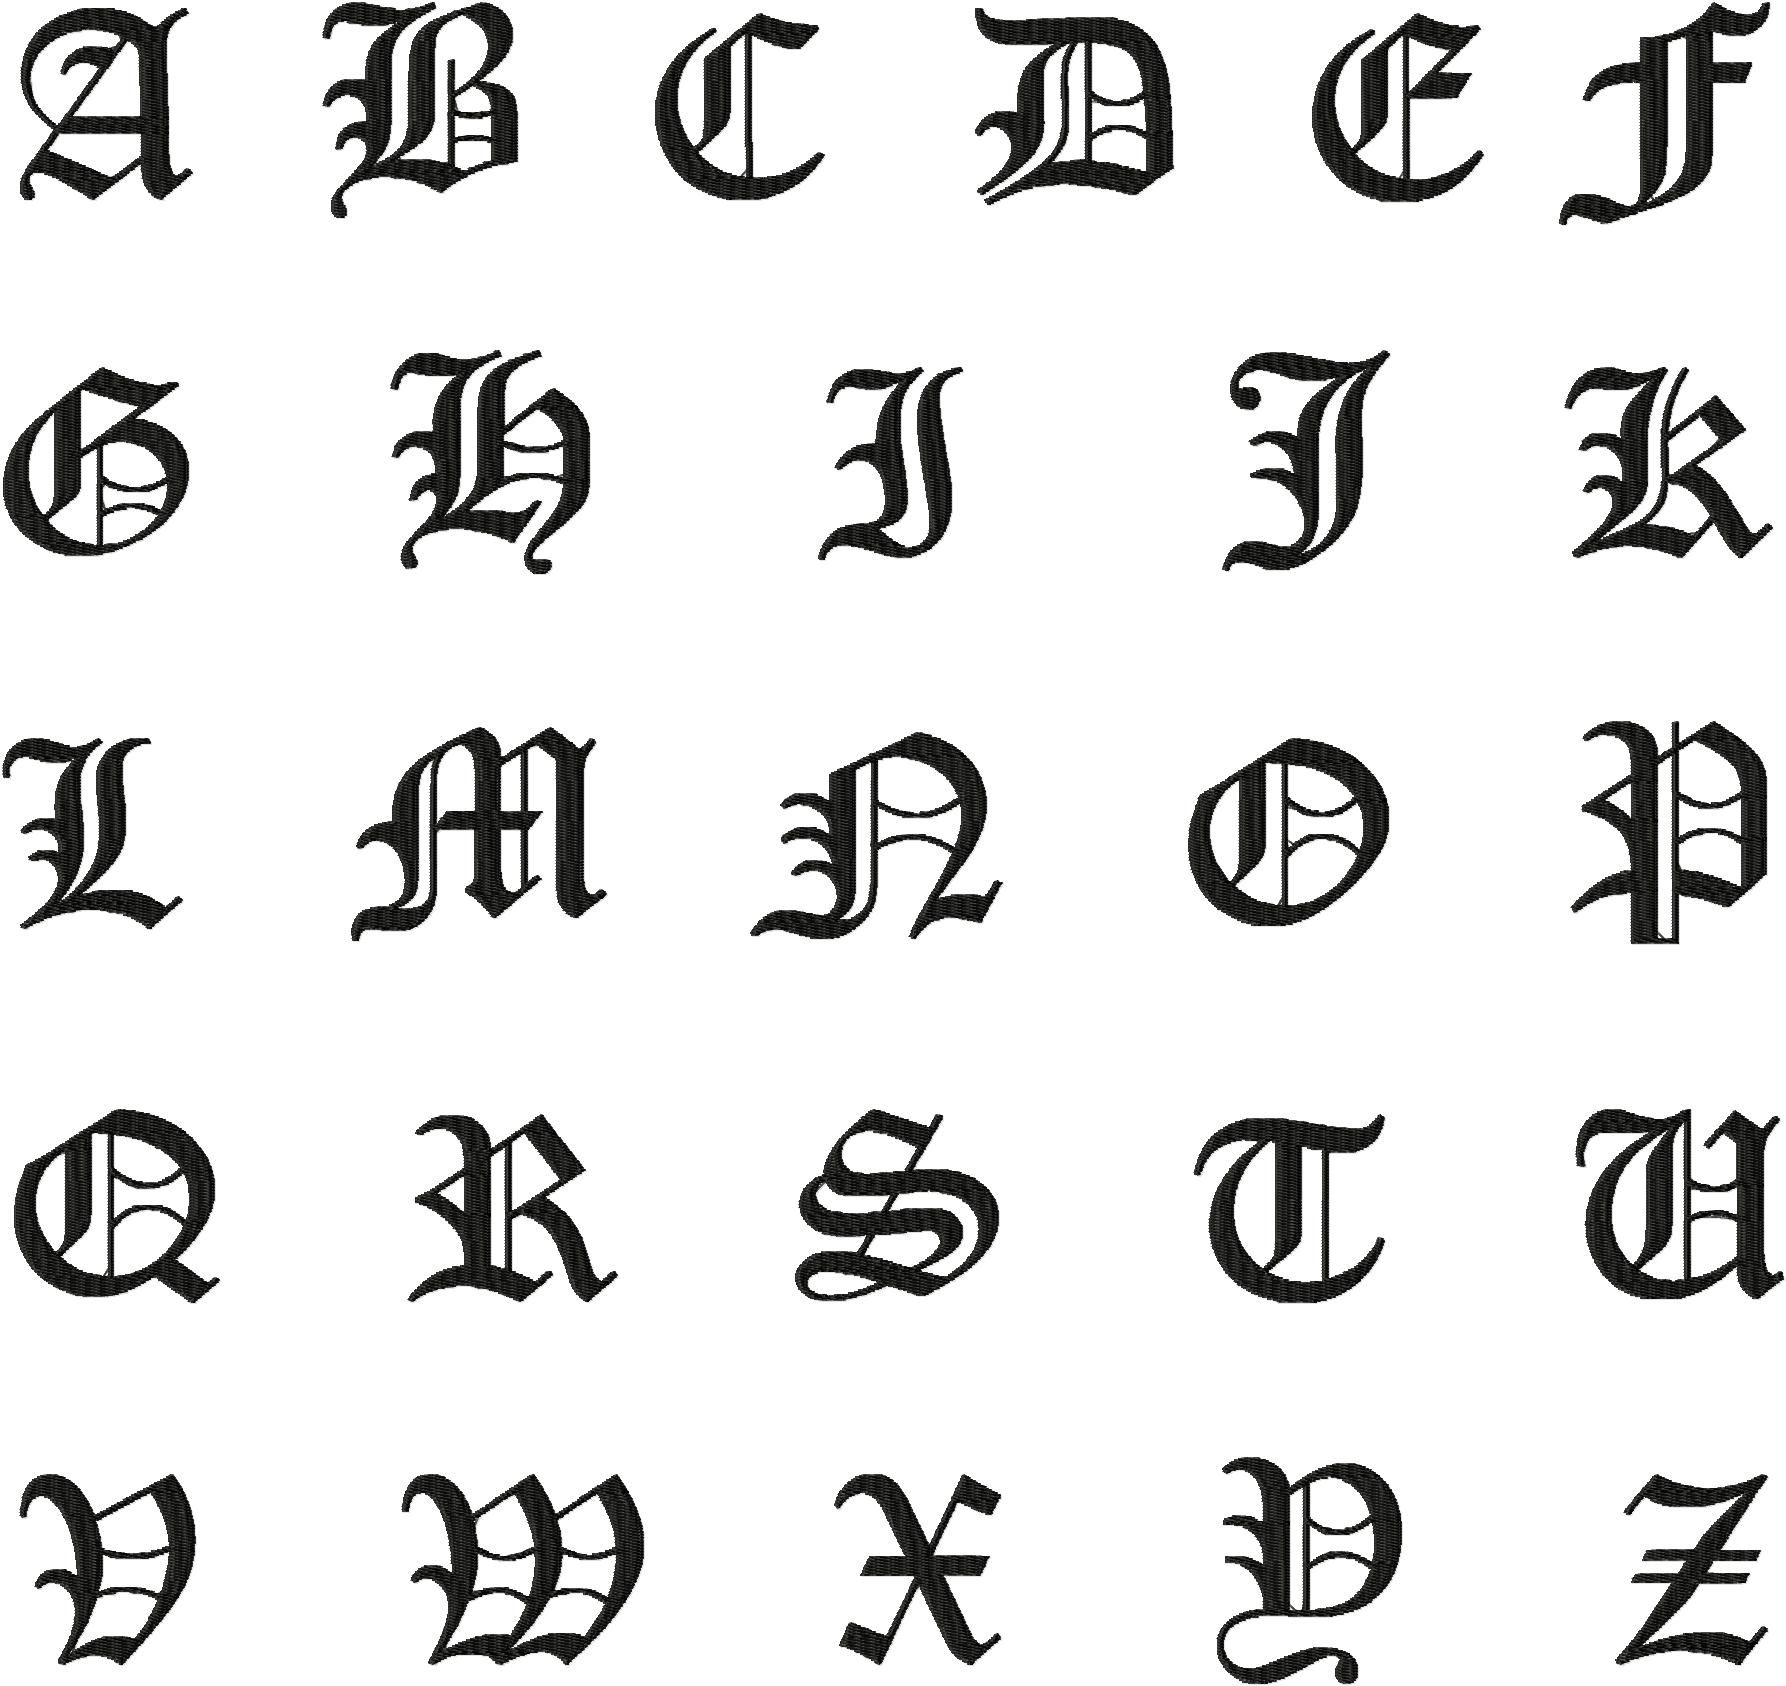 Old English Old english font, Embroidery fonts, Old english